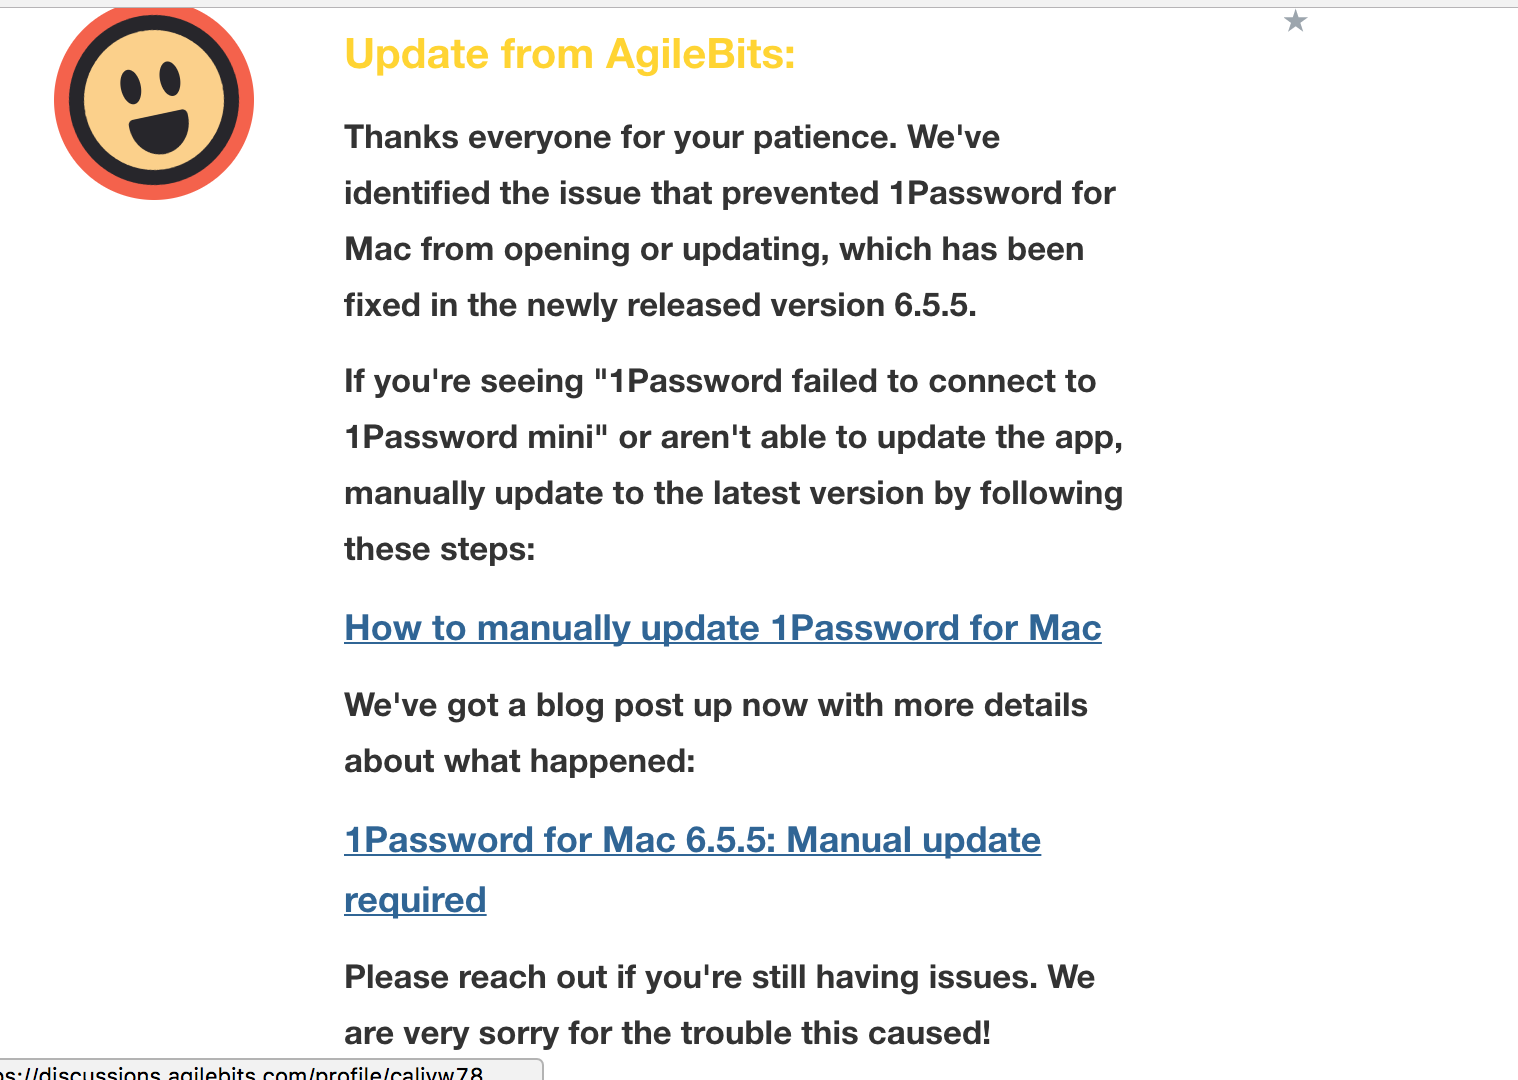 1Password had an issue within the last 48 hrs that requires a manual upgrade.